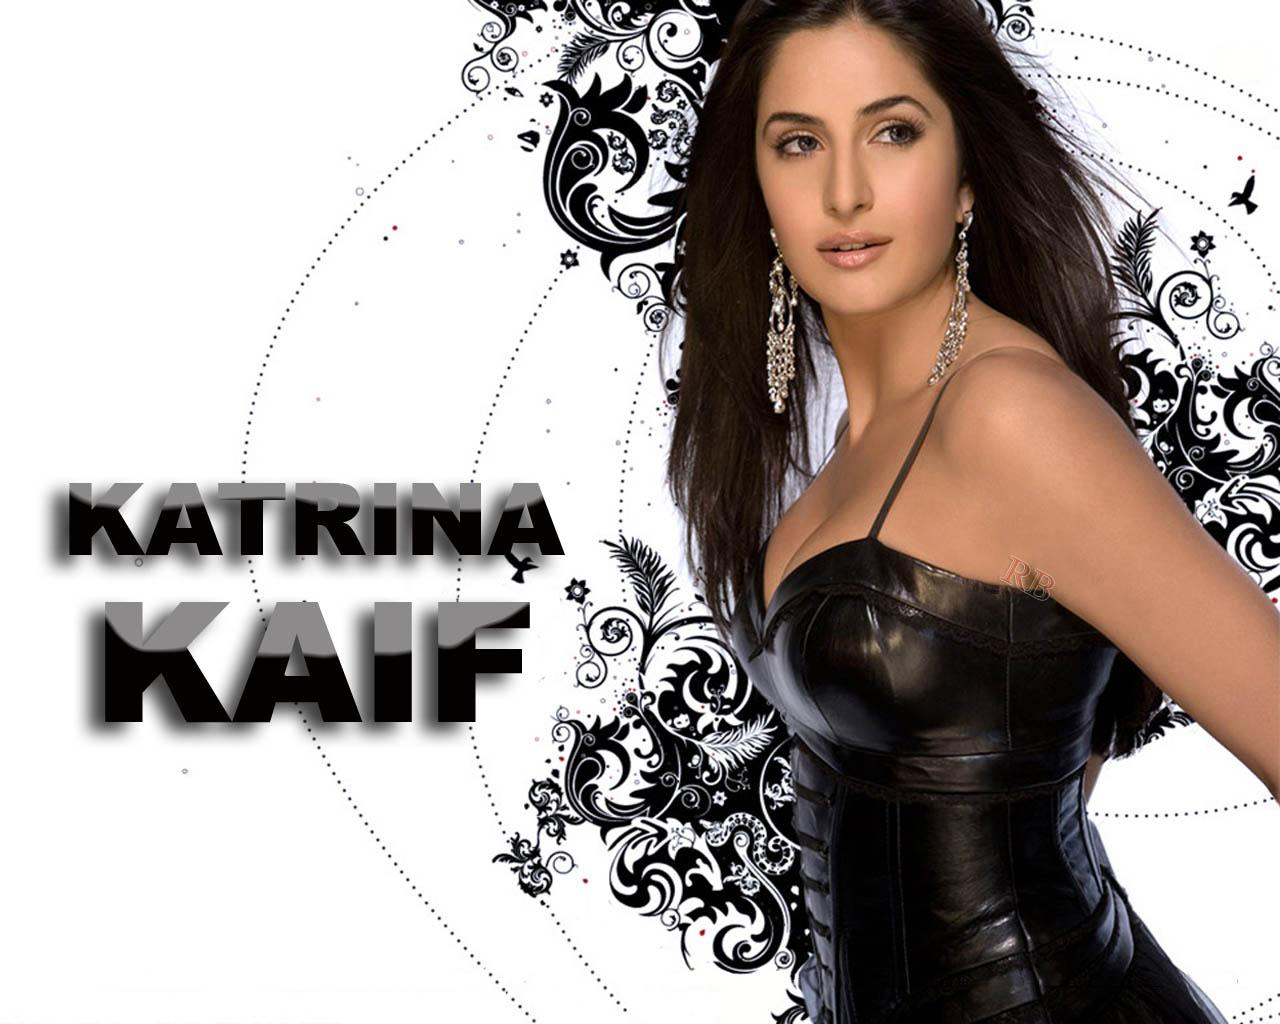 Bollywood Actresses Wallpapers gallery: Katrina Kaif Without Clothes ...